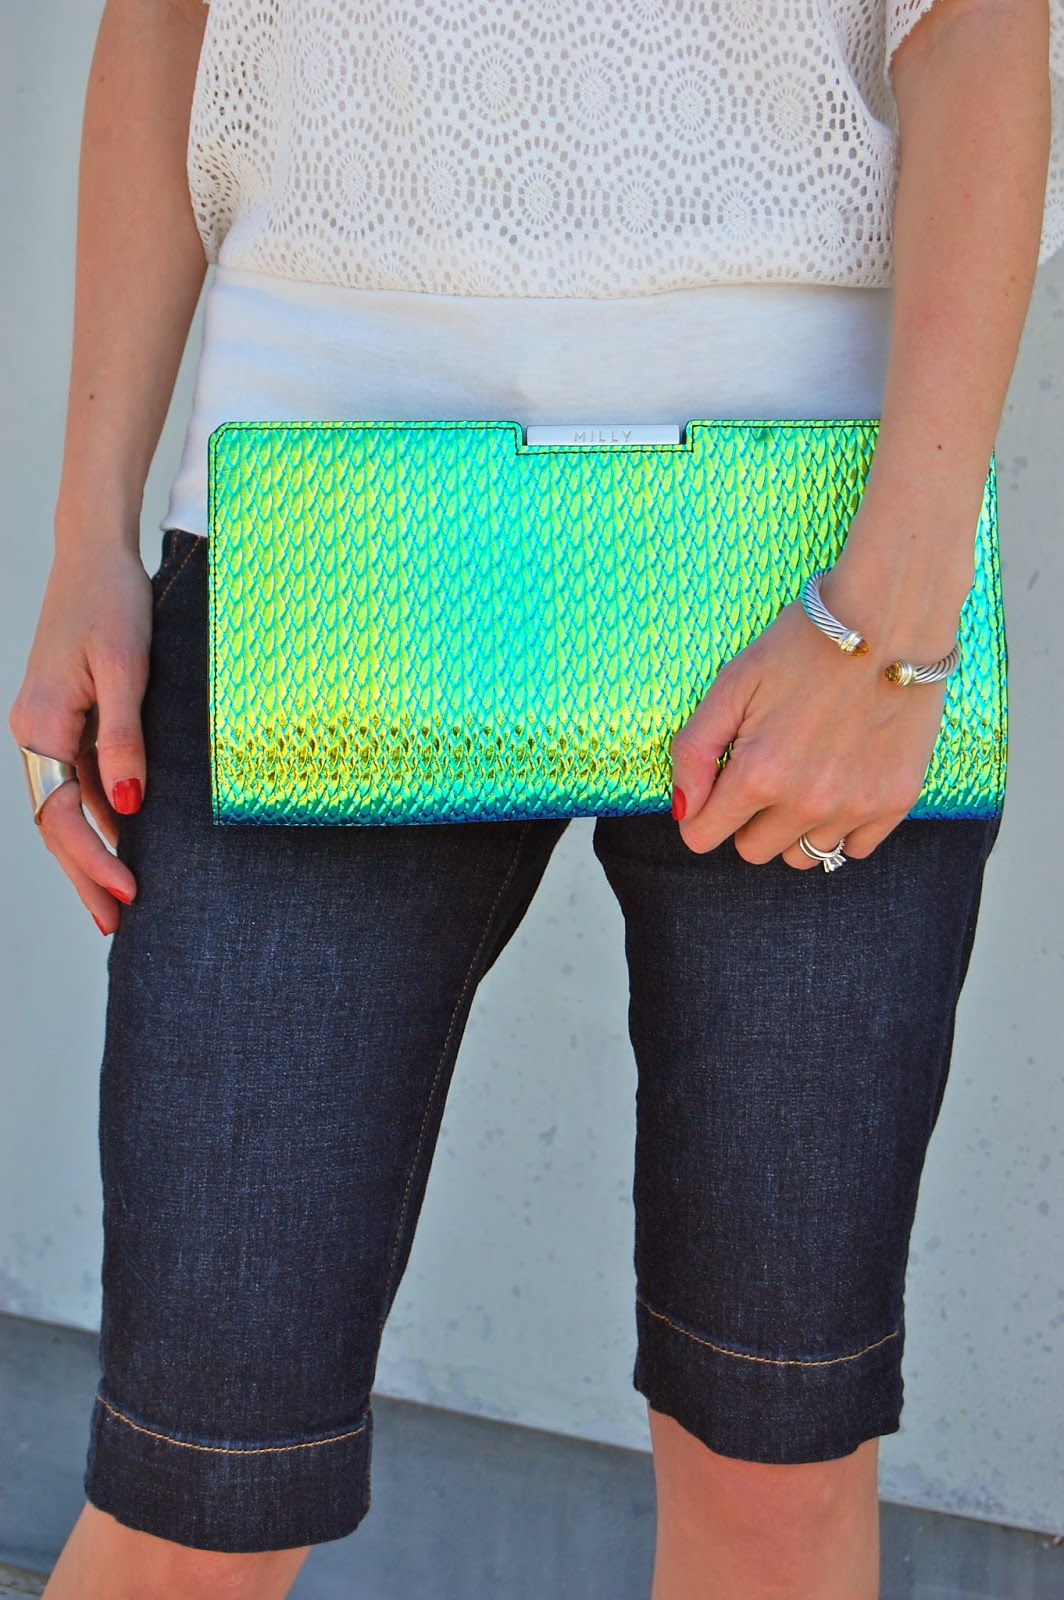 Milly Miley Frame Clutch in Embossed Hologram, Milly By Michelle, Hologram Clutch